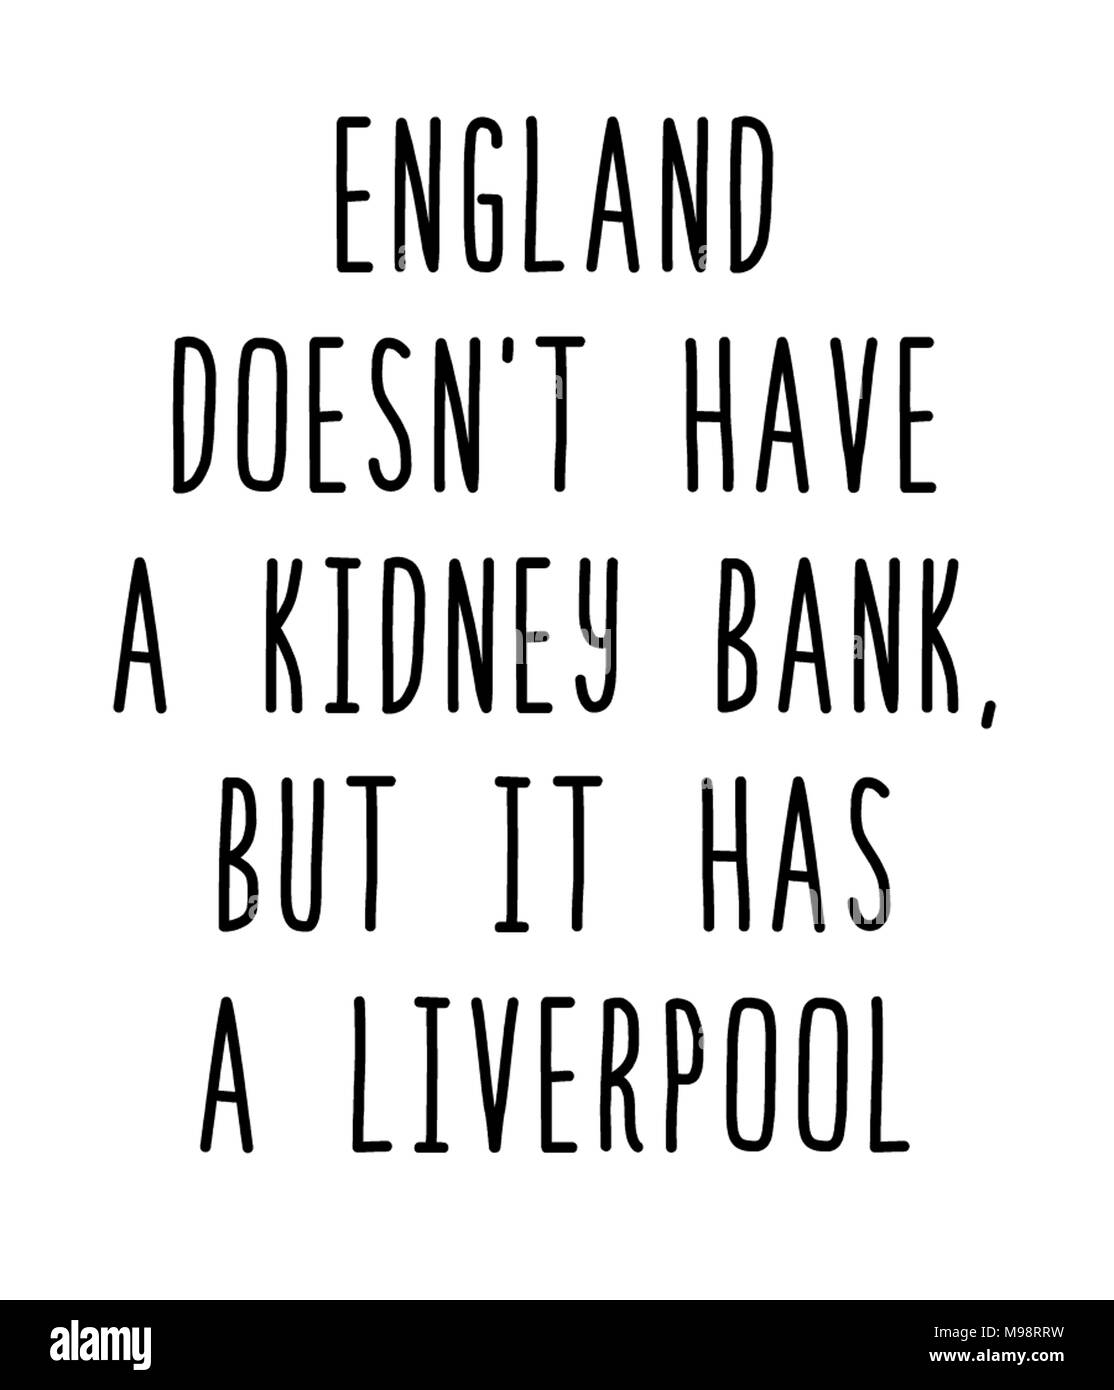 England doesn't have a kidney bank but it has a Liverpool - Stock Image